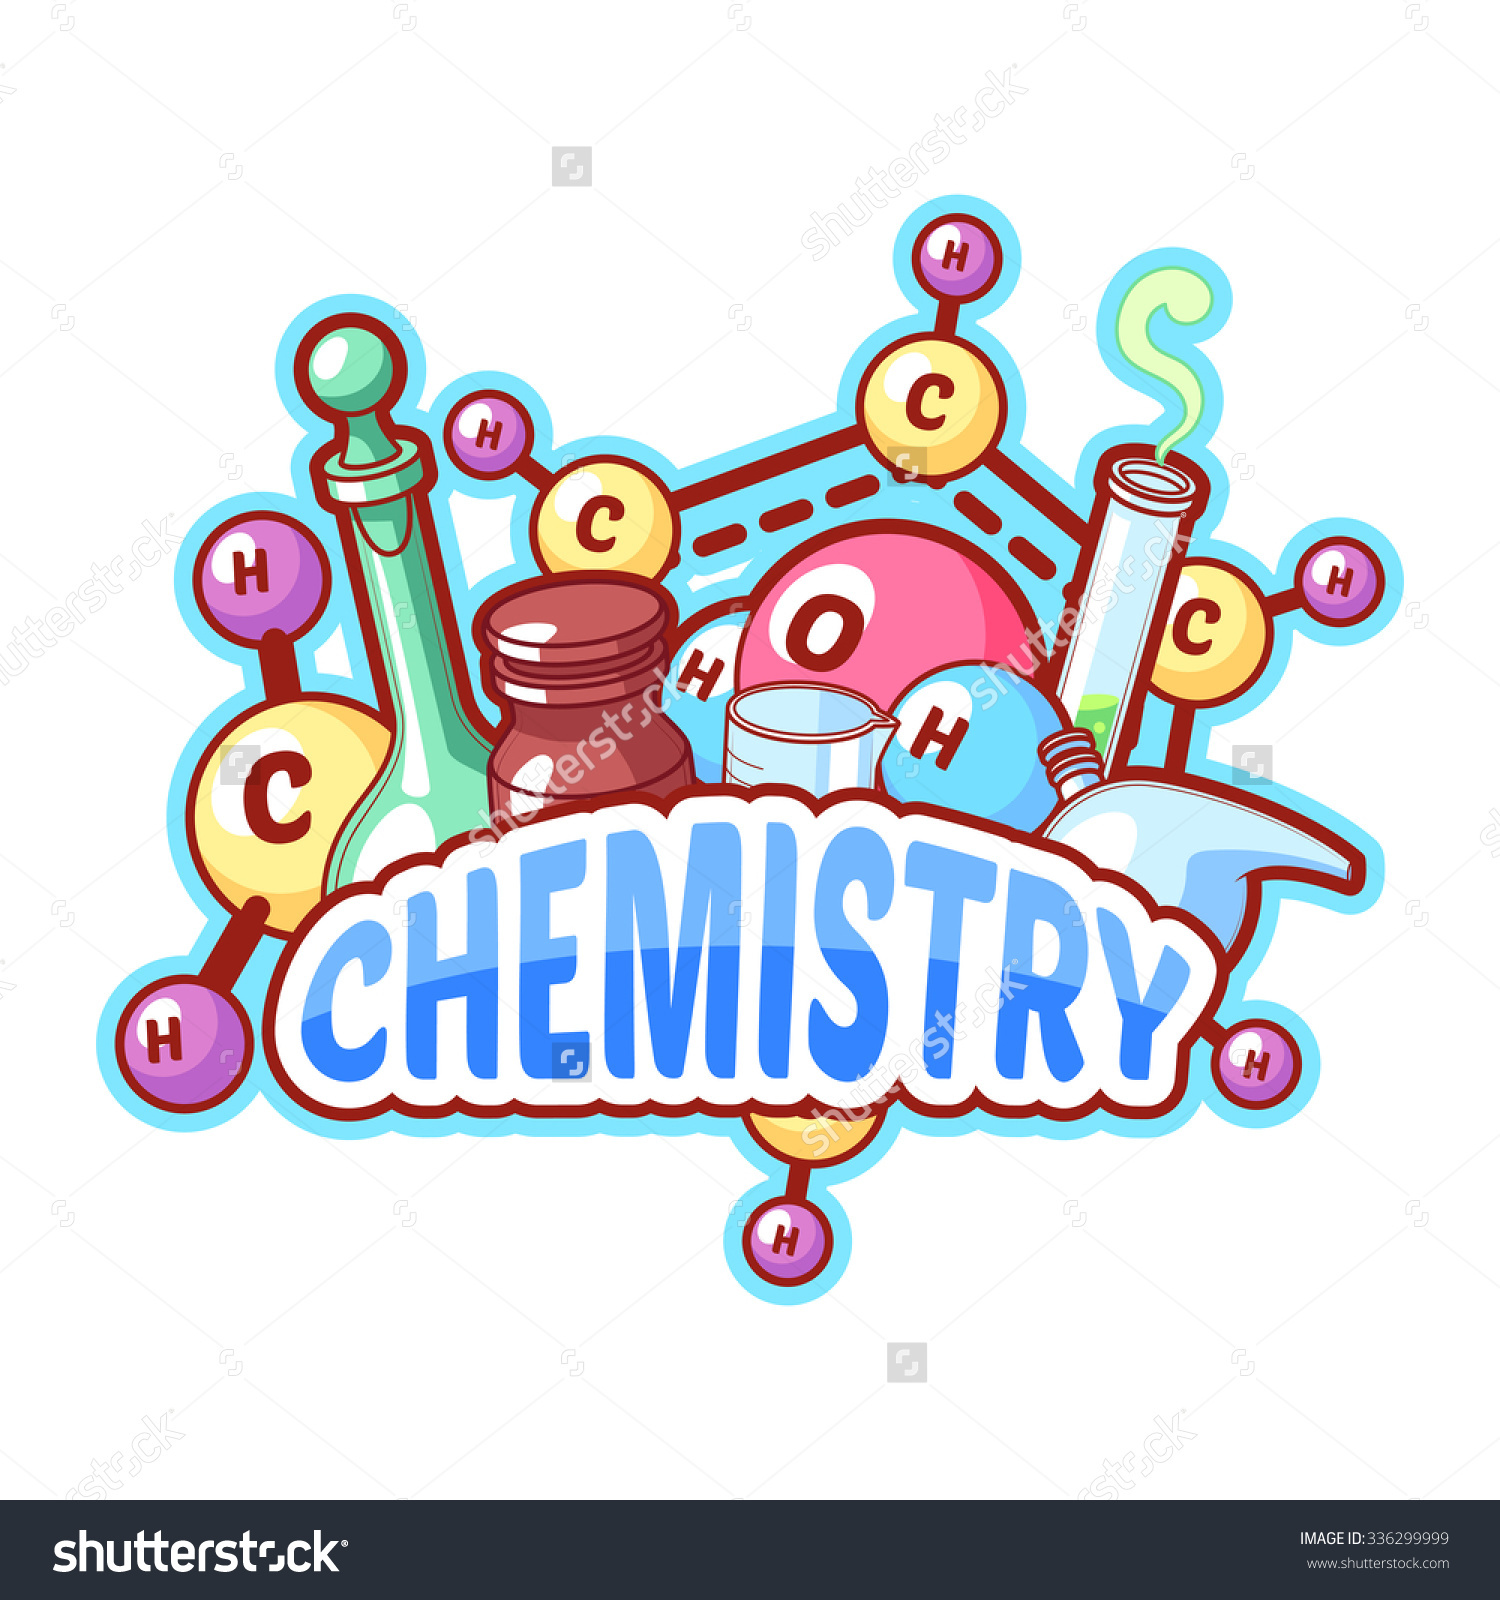 Chemistry clipart logo. Cover page designs incep